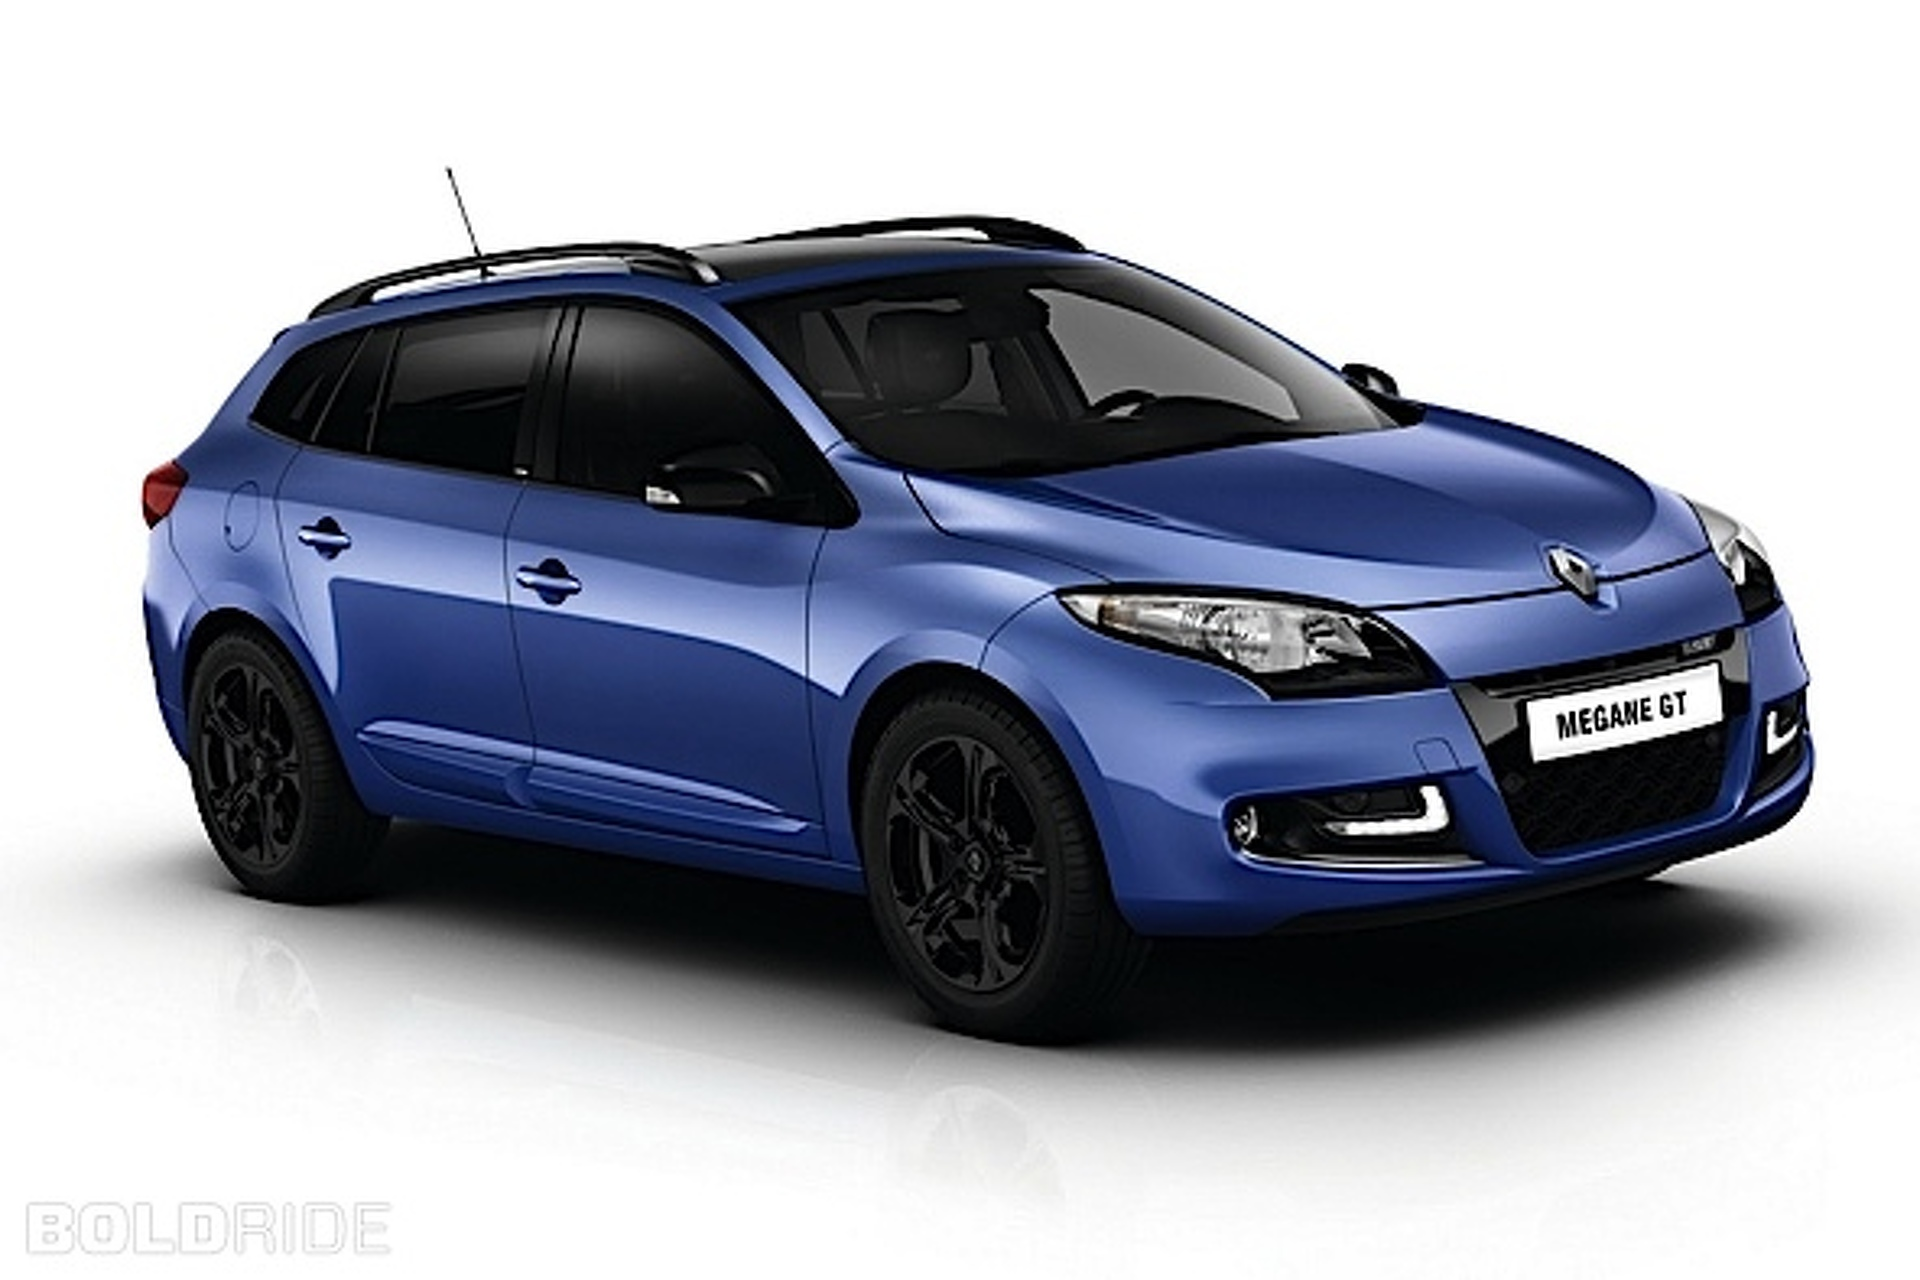 The Renault Mégane: Style Plus Performance